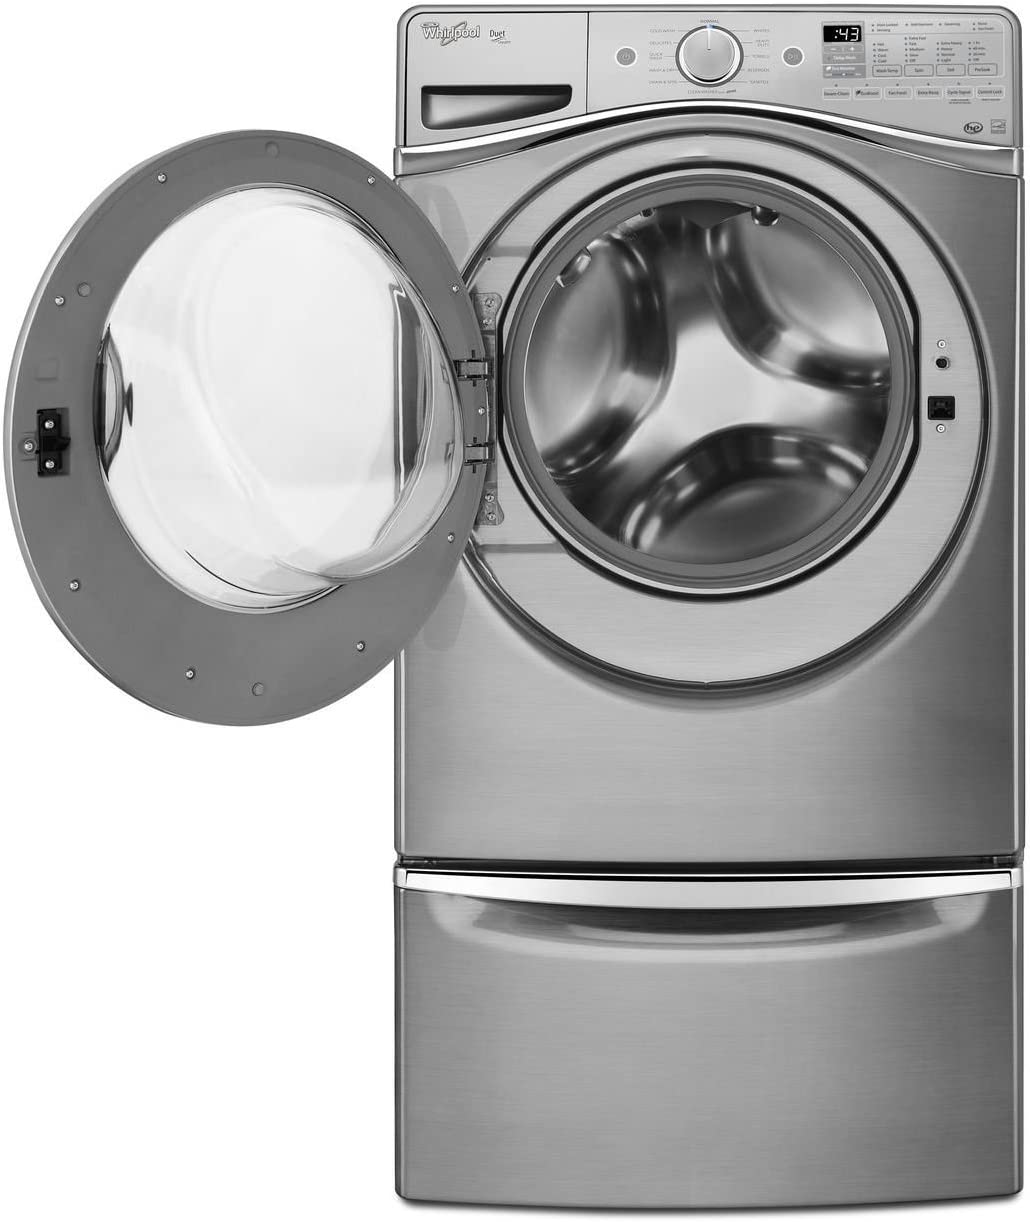 Whirlpool WFW95HEDC Independiente Carga frontal Plata lavadora ...